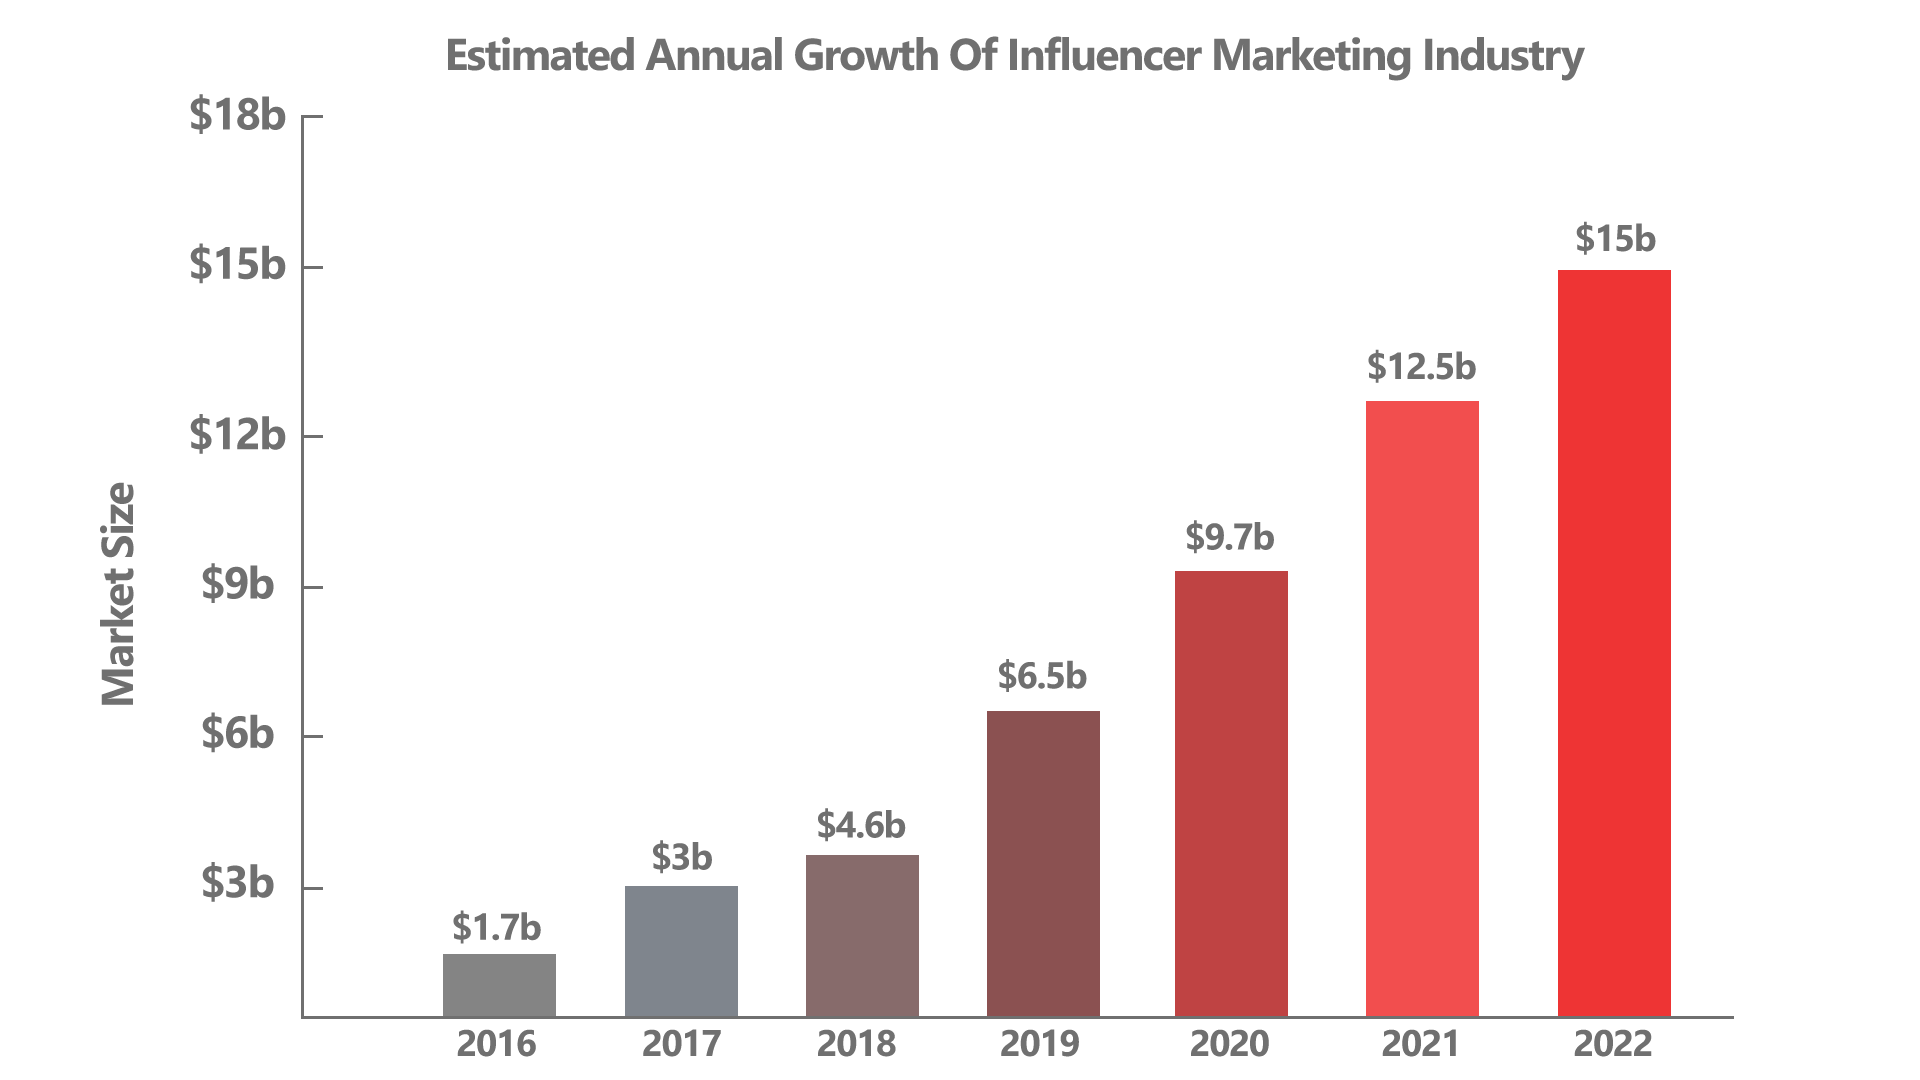 Influencer marketing industry - annual growth rate